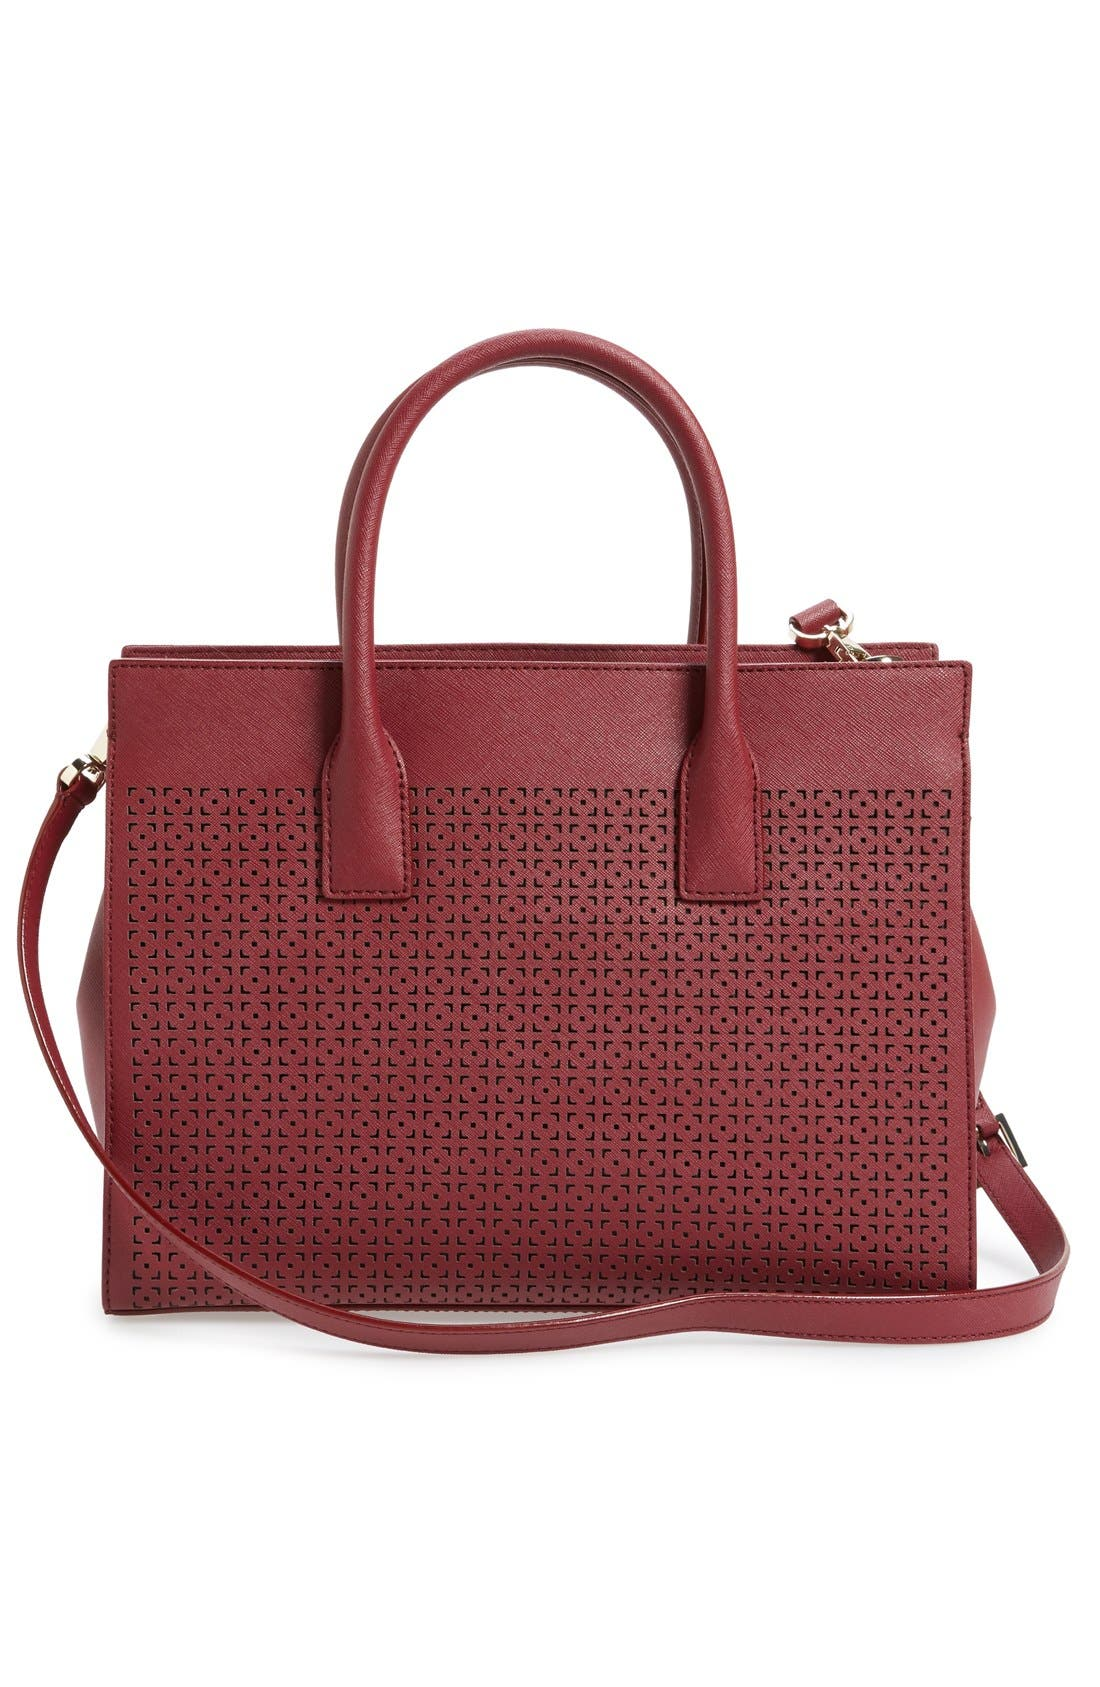 Alternate Image 3  - kate spade new york 'cameron street - candace' perforated satchel